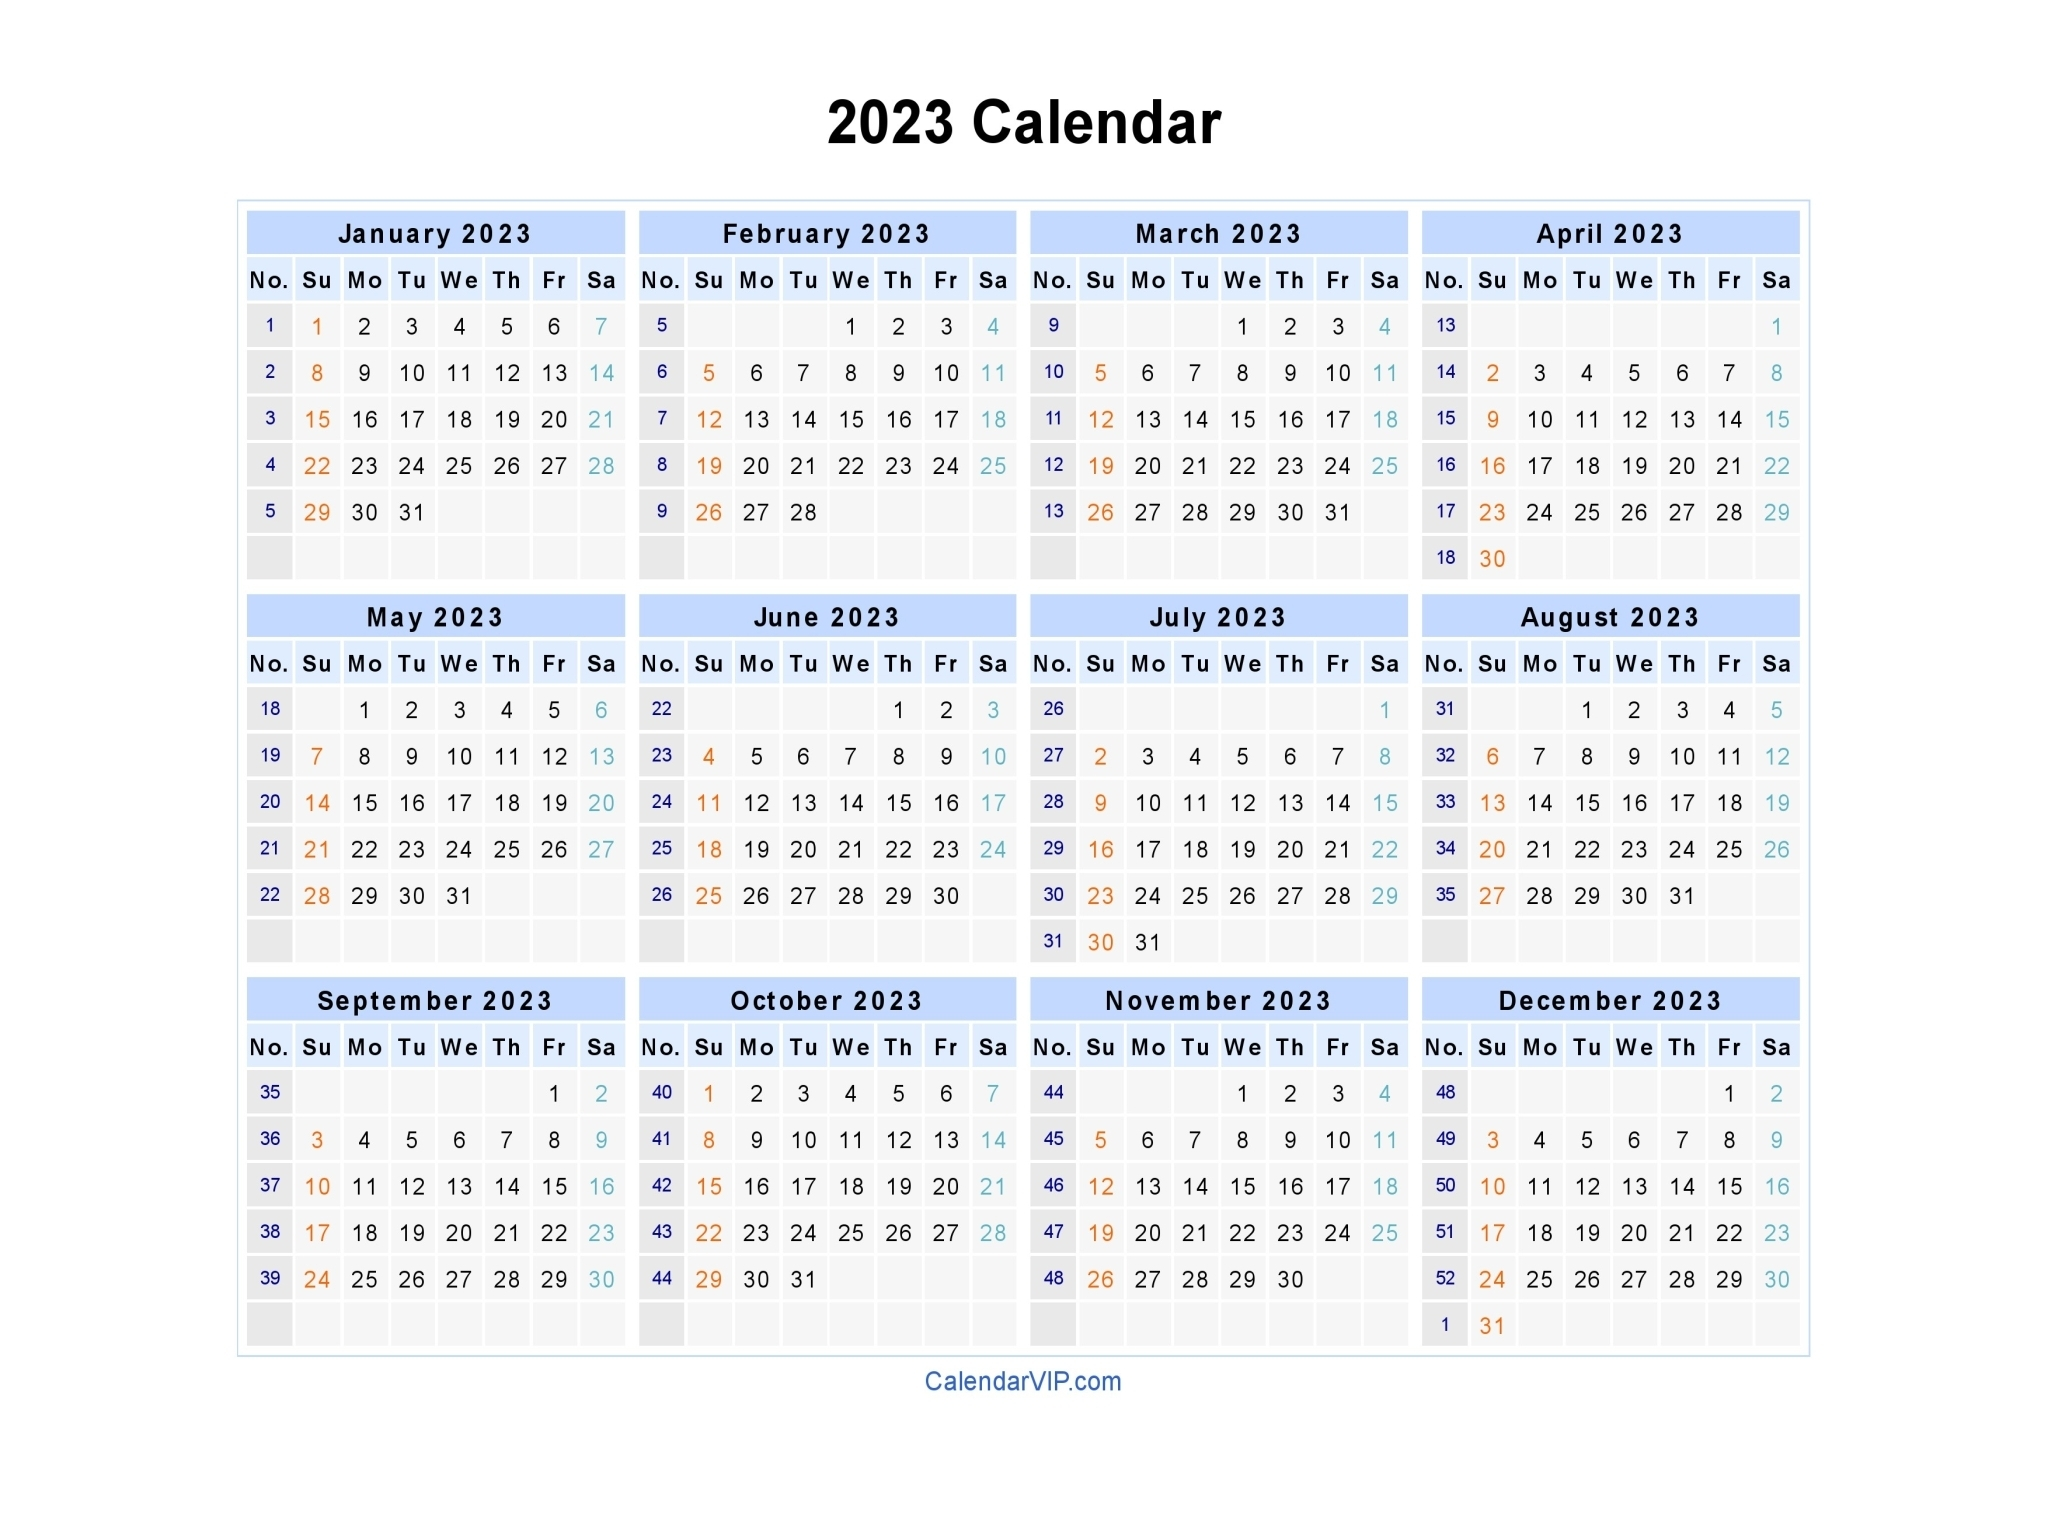 2023 Calendar - Blank Printable Calendar Template In Pdf pertaining to 1 Page Printable 2023 Calendar